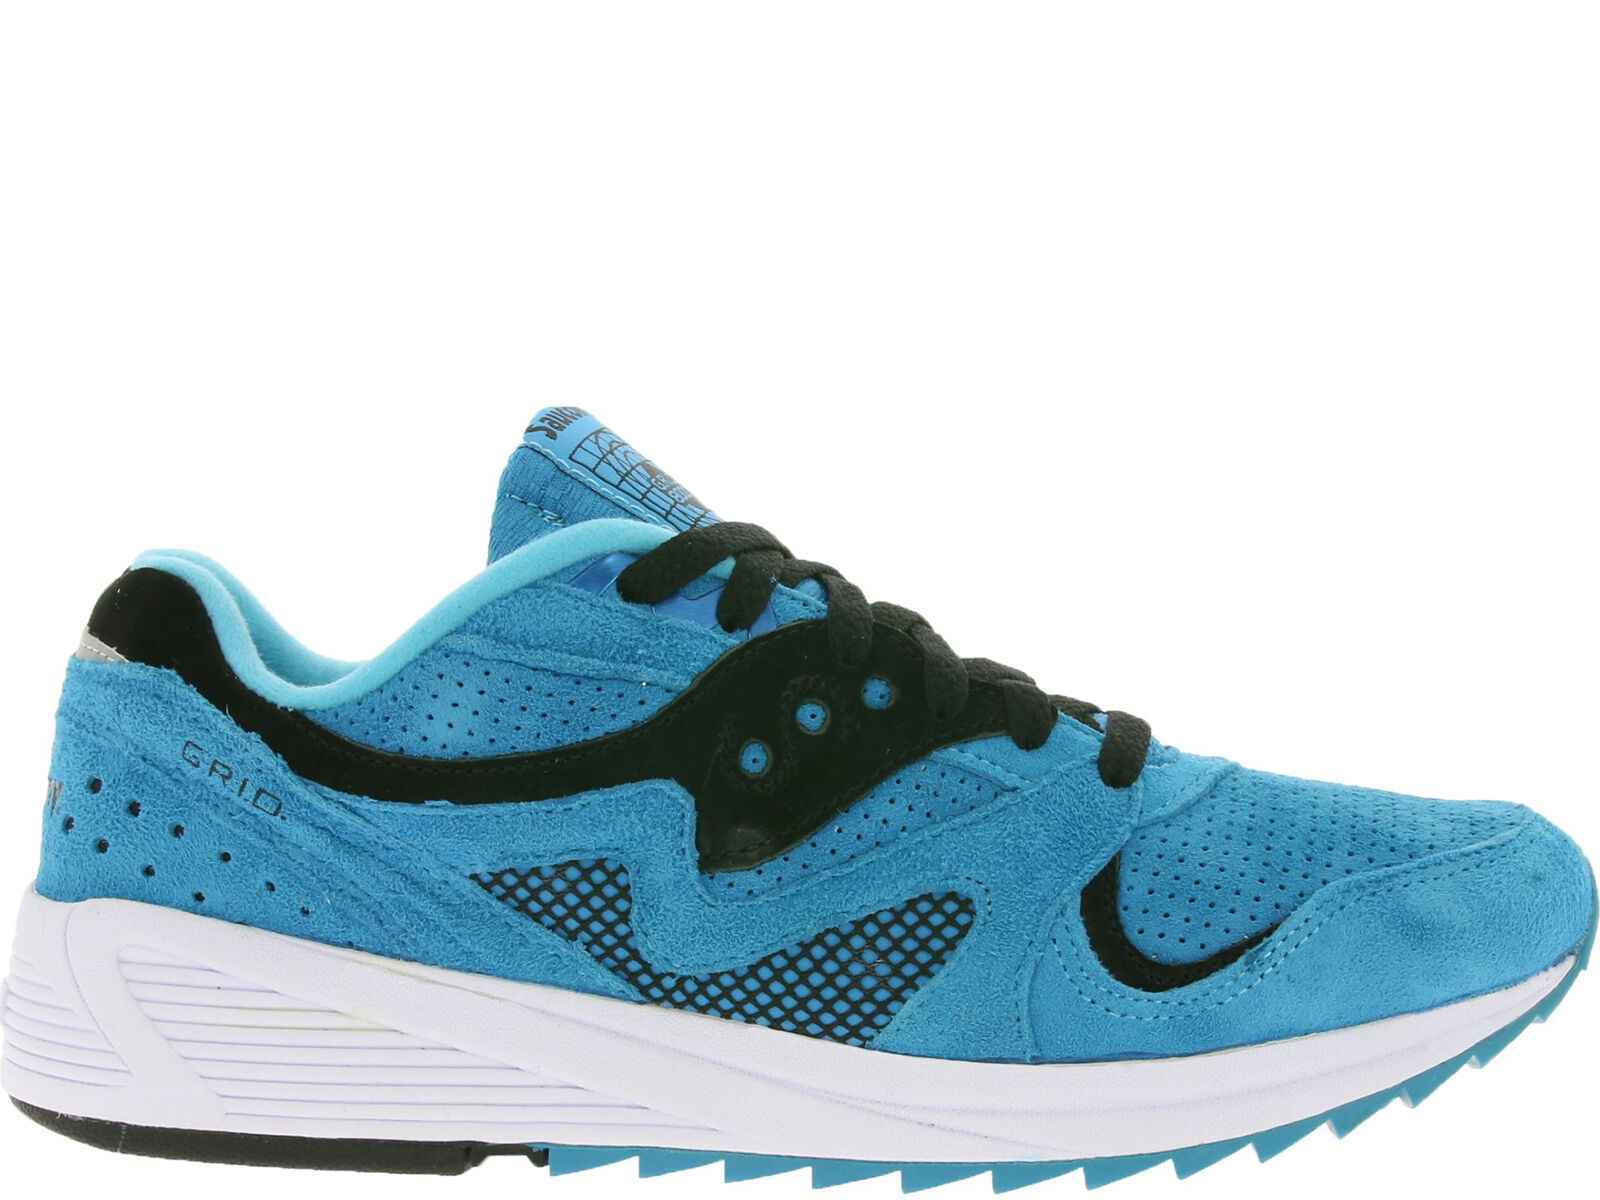 Brand New Saucony Grid 8000 Men's Athletic Fashion Sneakers [S70223-2]